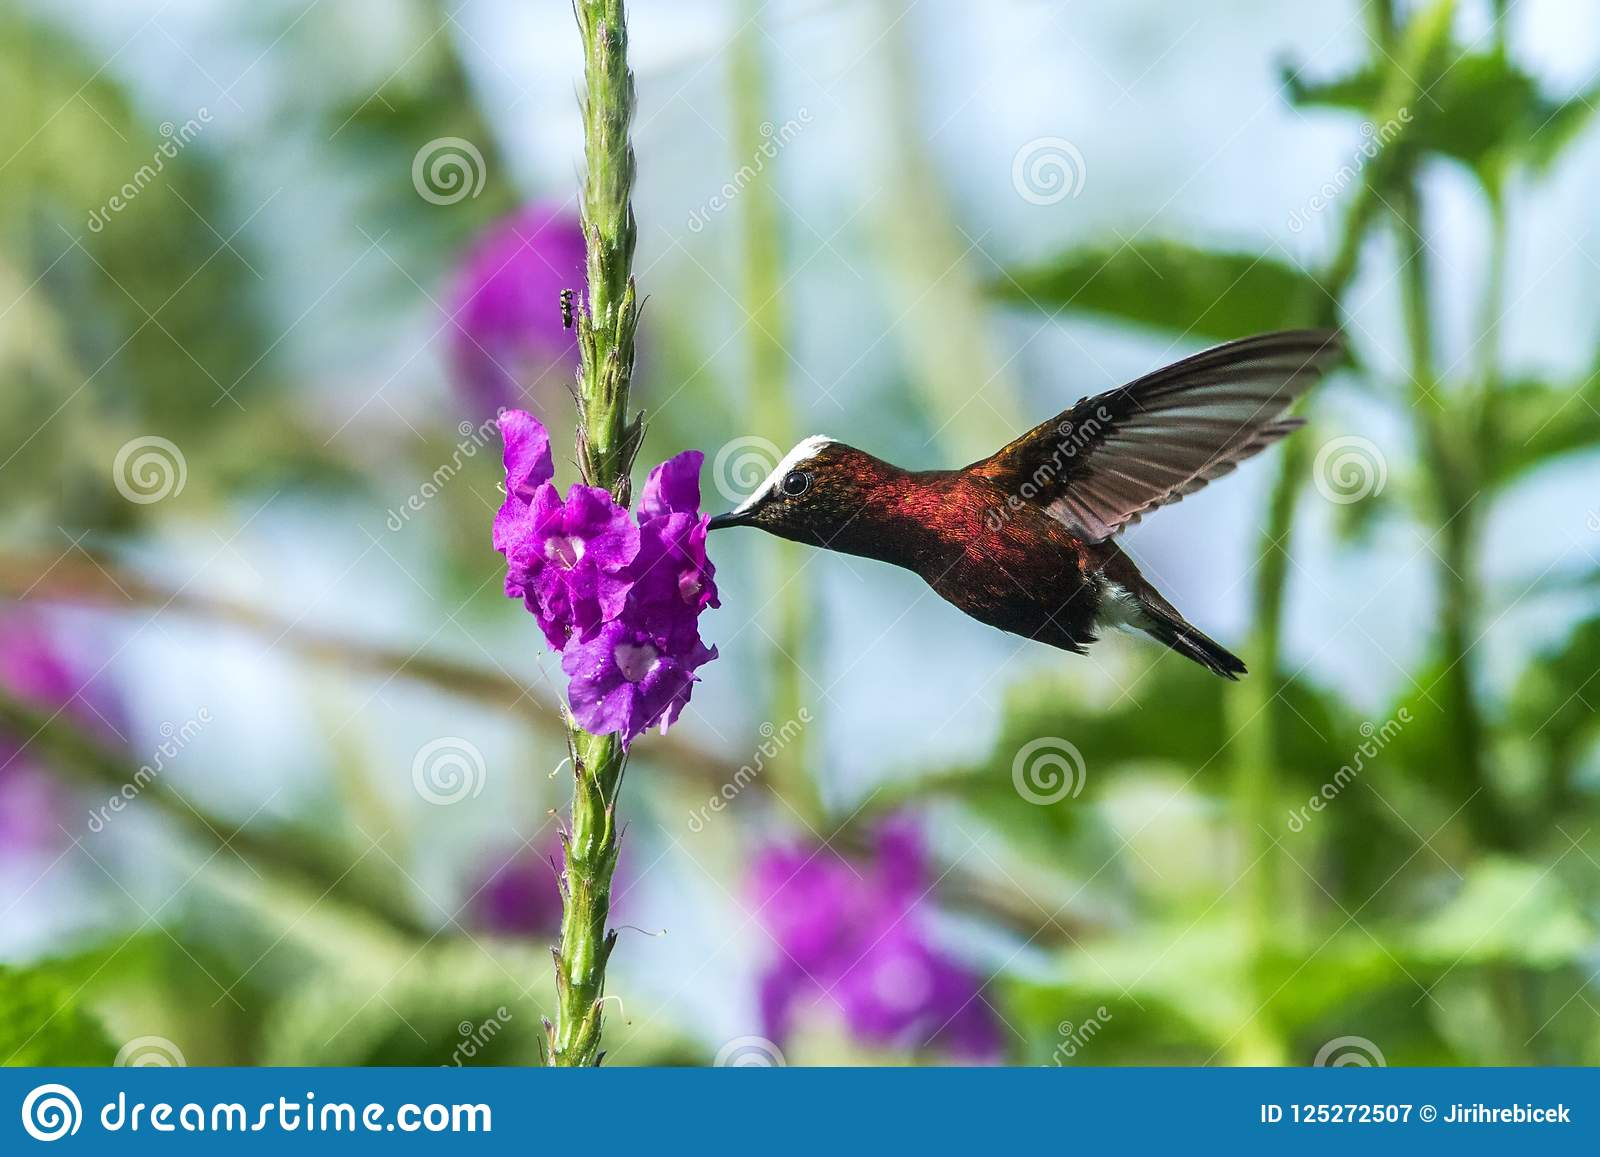 Snowcap, flying next to violet flower, bird from mountain tropical forest, Costa Rica, natural habitat, endemic